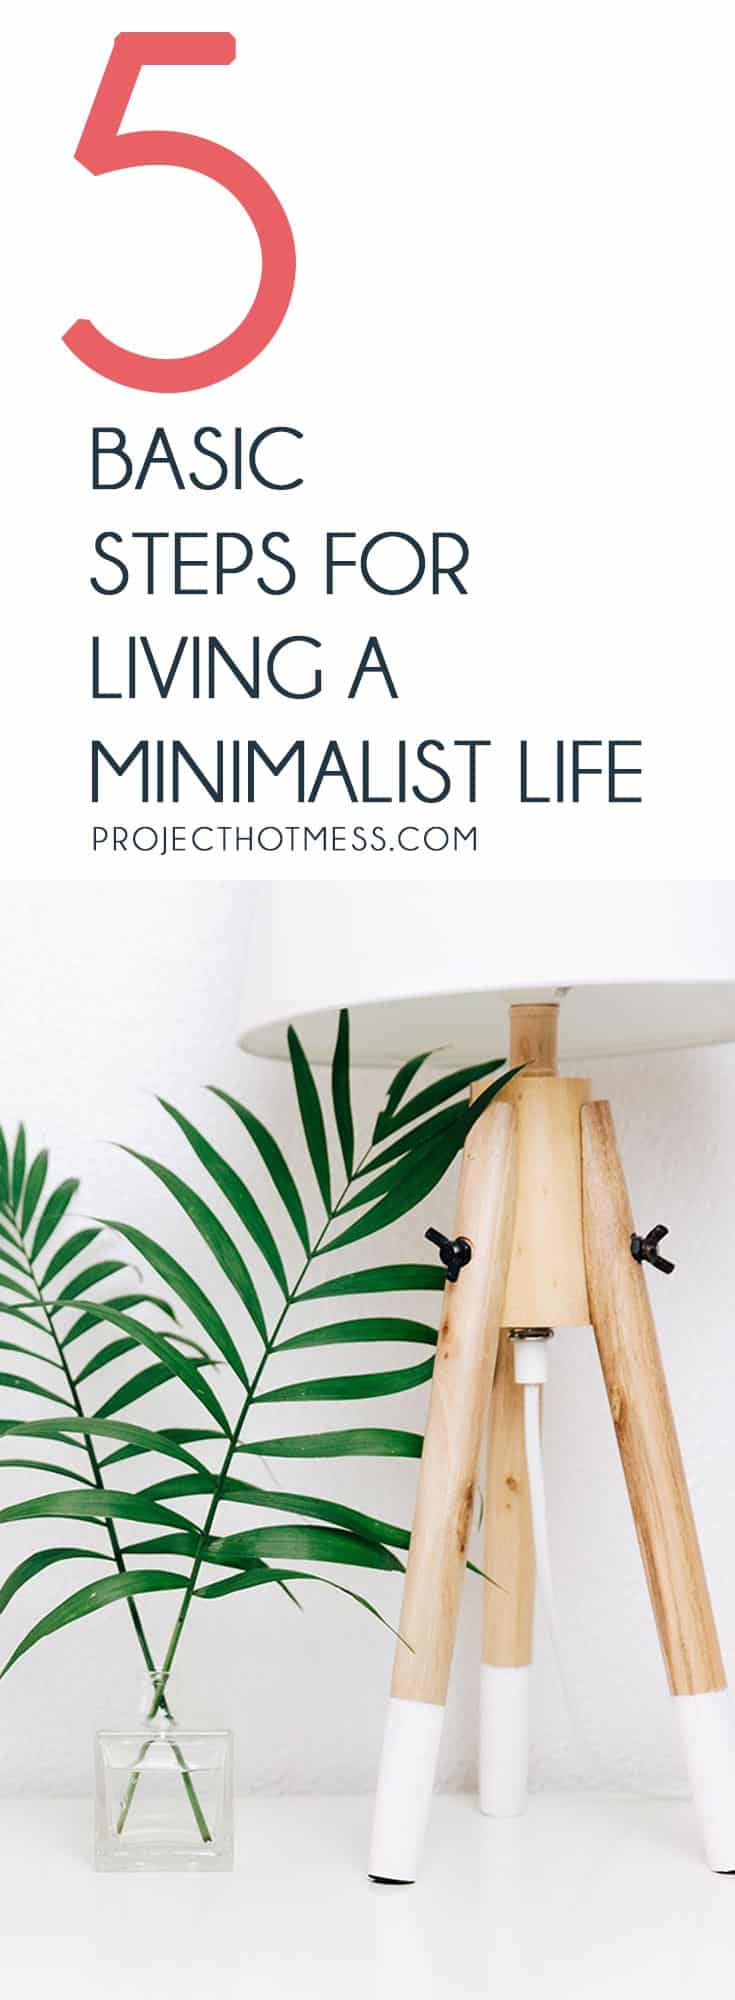 Converting to a minimalist life doesn't have to be complicated and overwhelming - adapting to living a minimalist lifestyle is easier than you think with these basic steps for living a minimalist life.